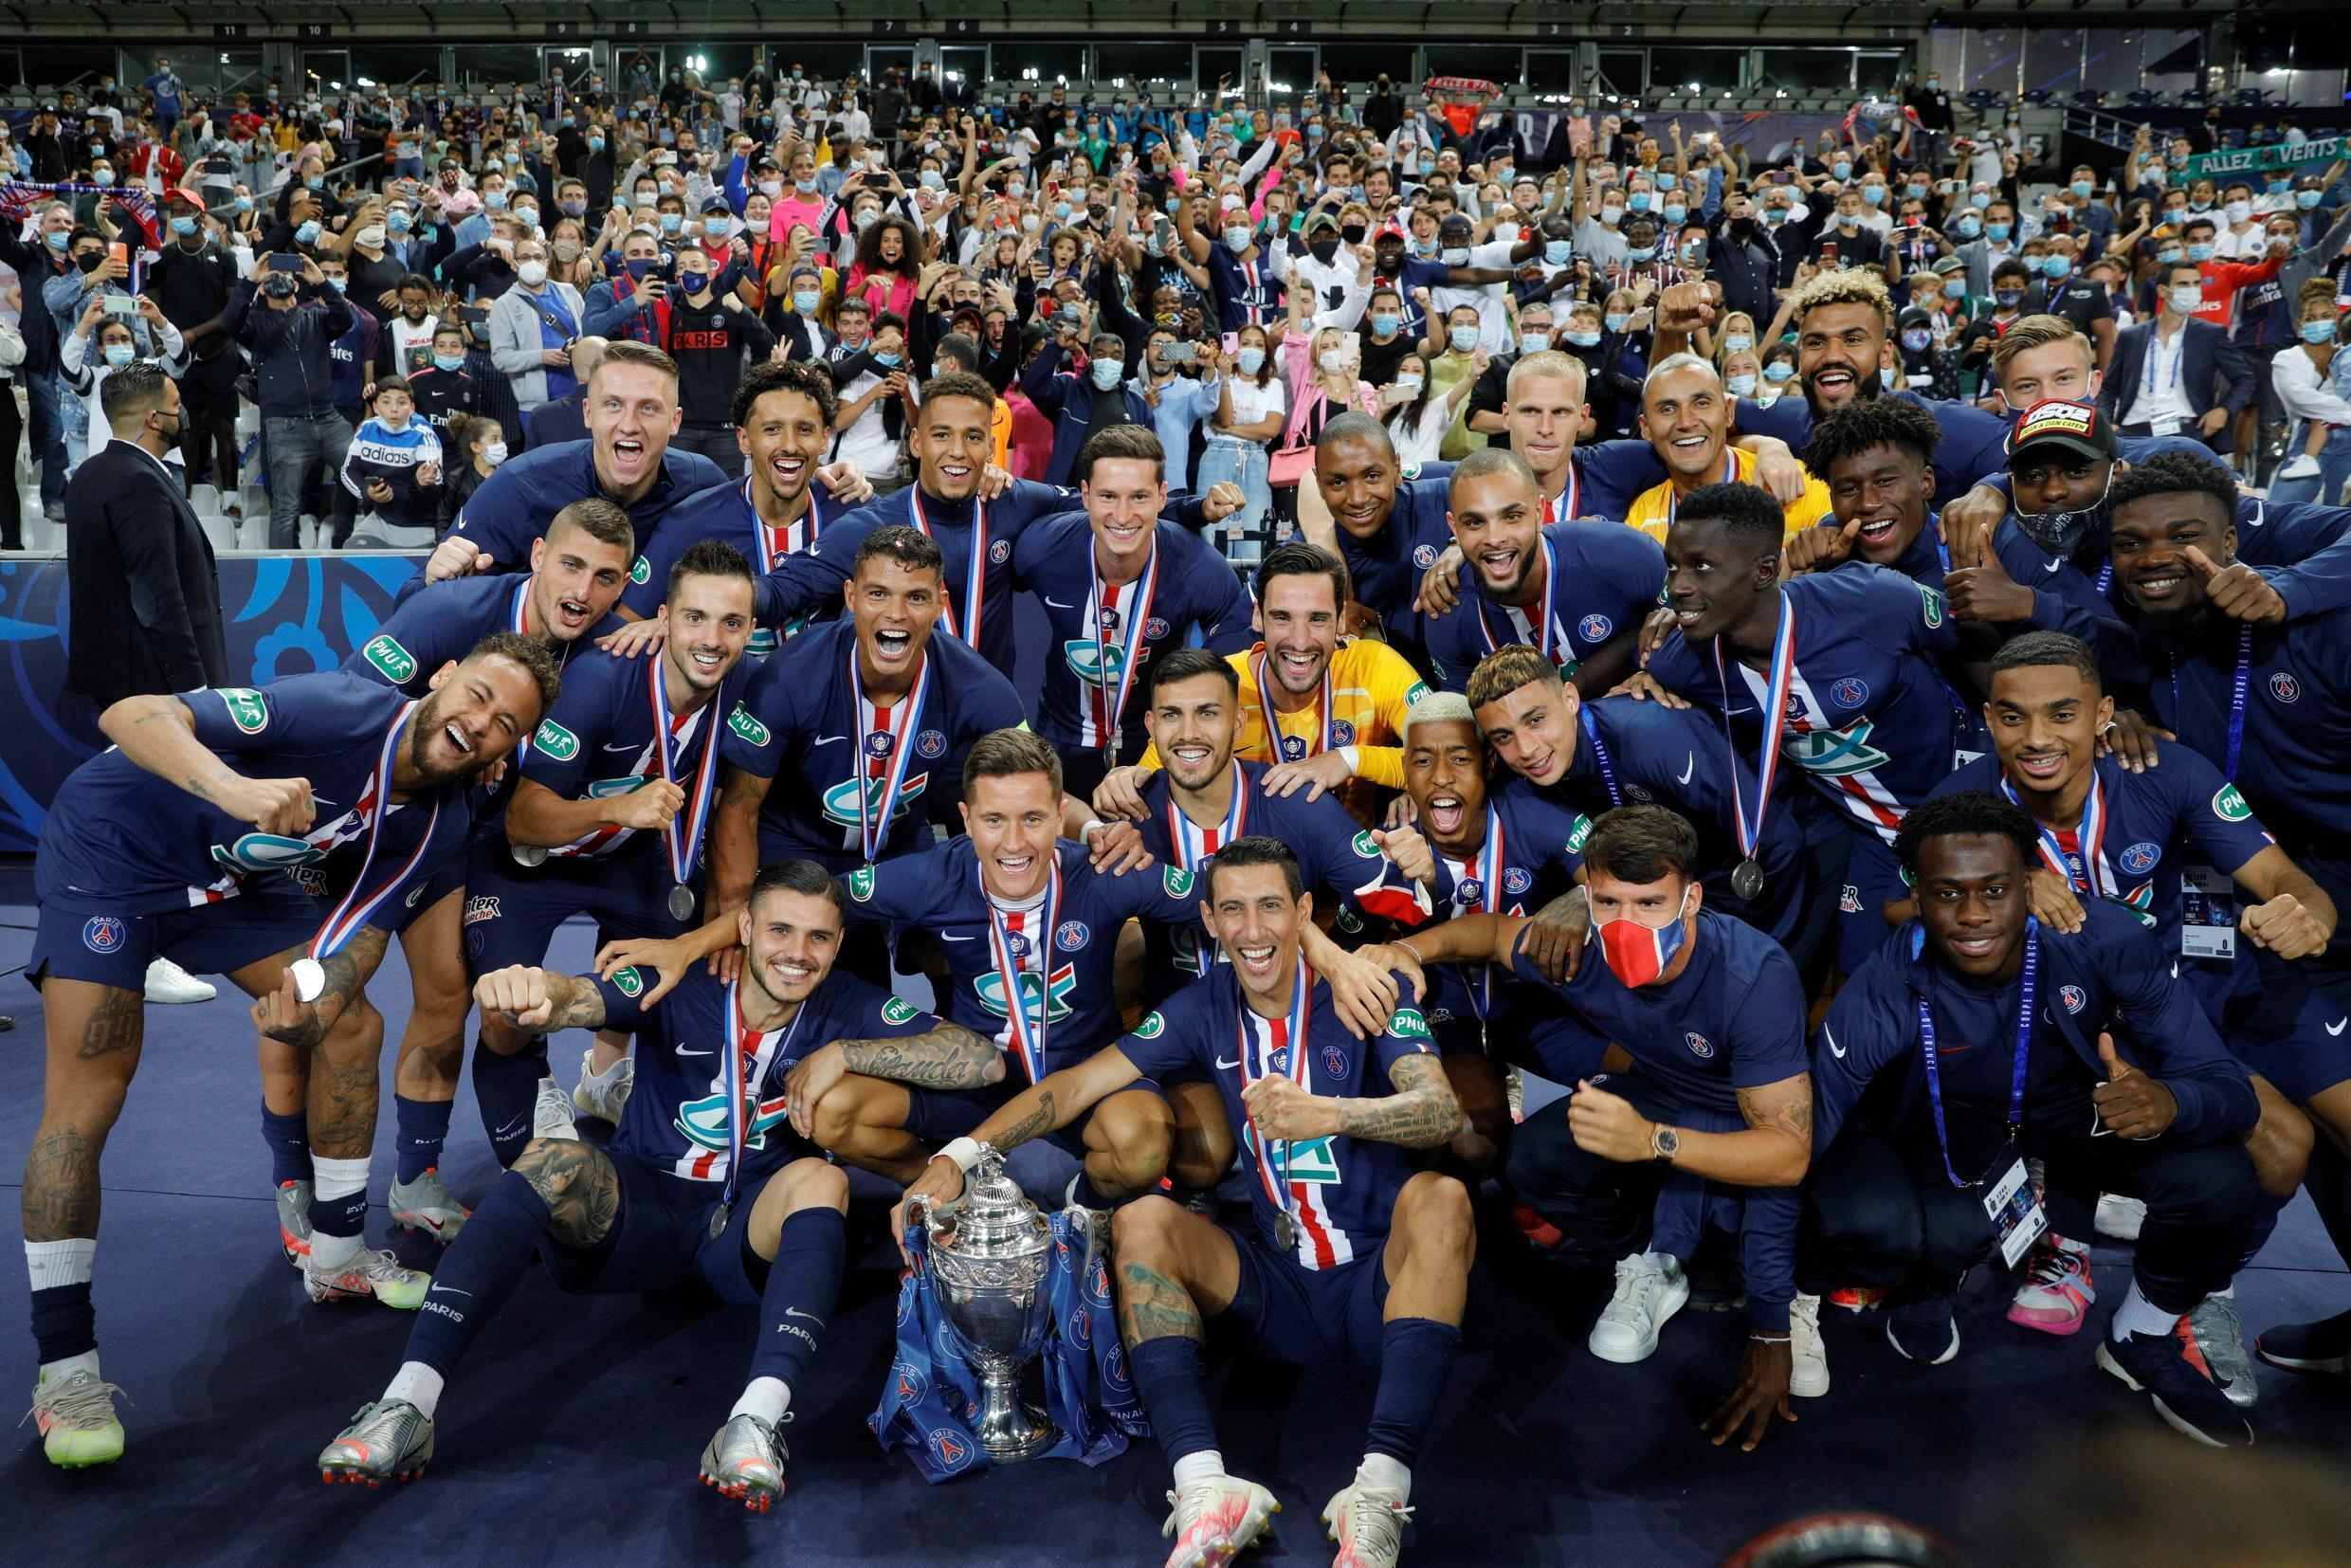 PSG players pose with the French Cup won against Saint-Etienne on 24 July 2020 at the Stade de France.